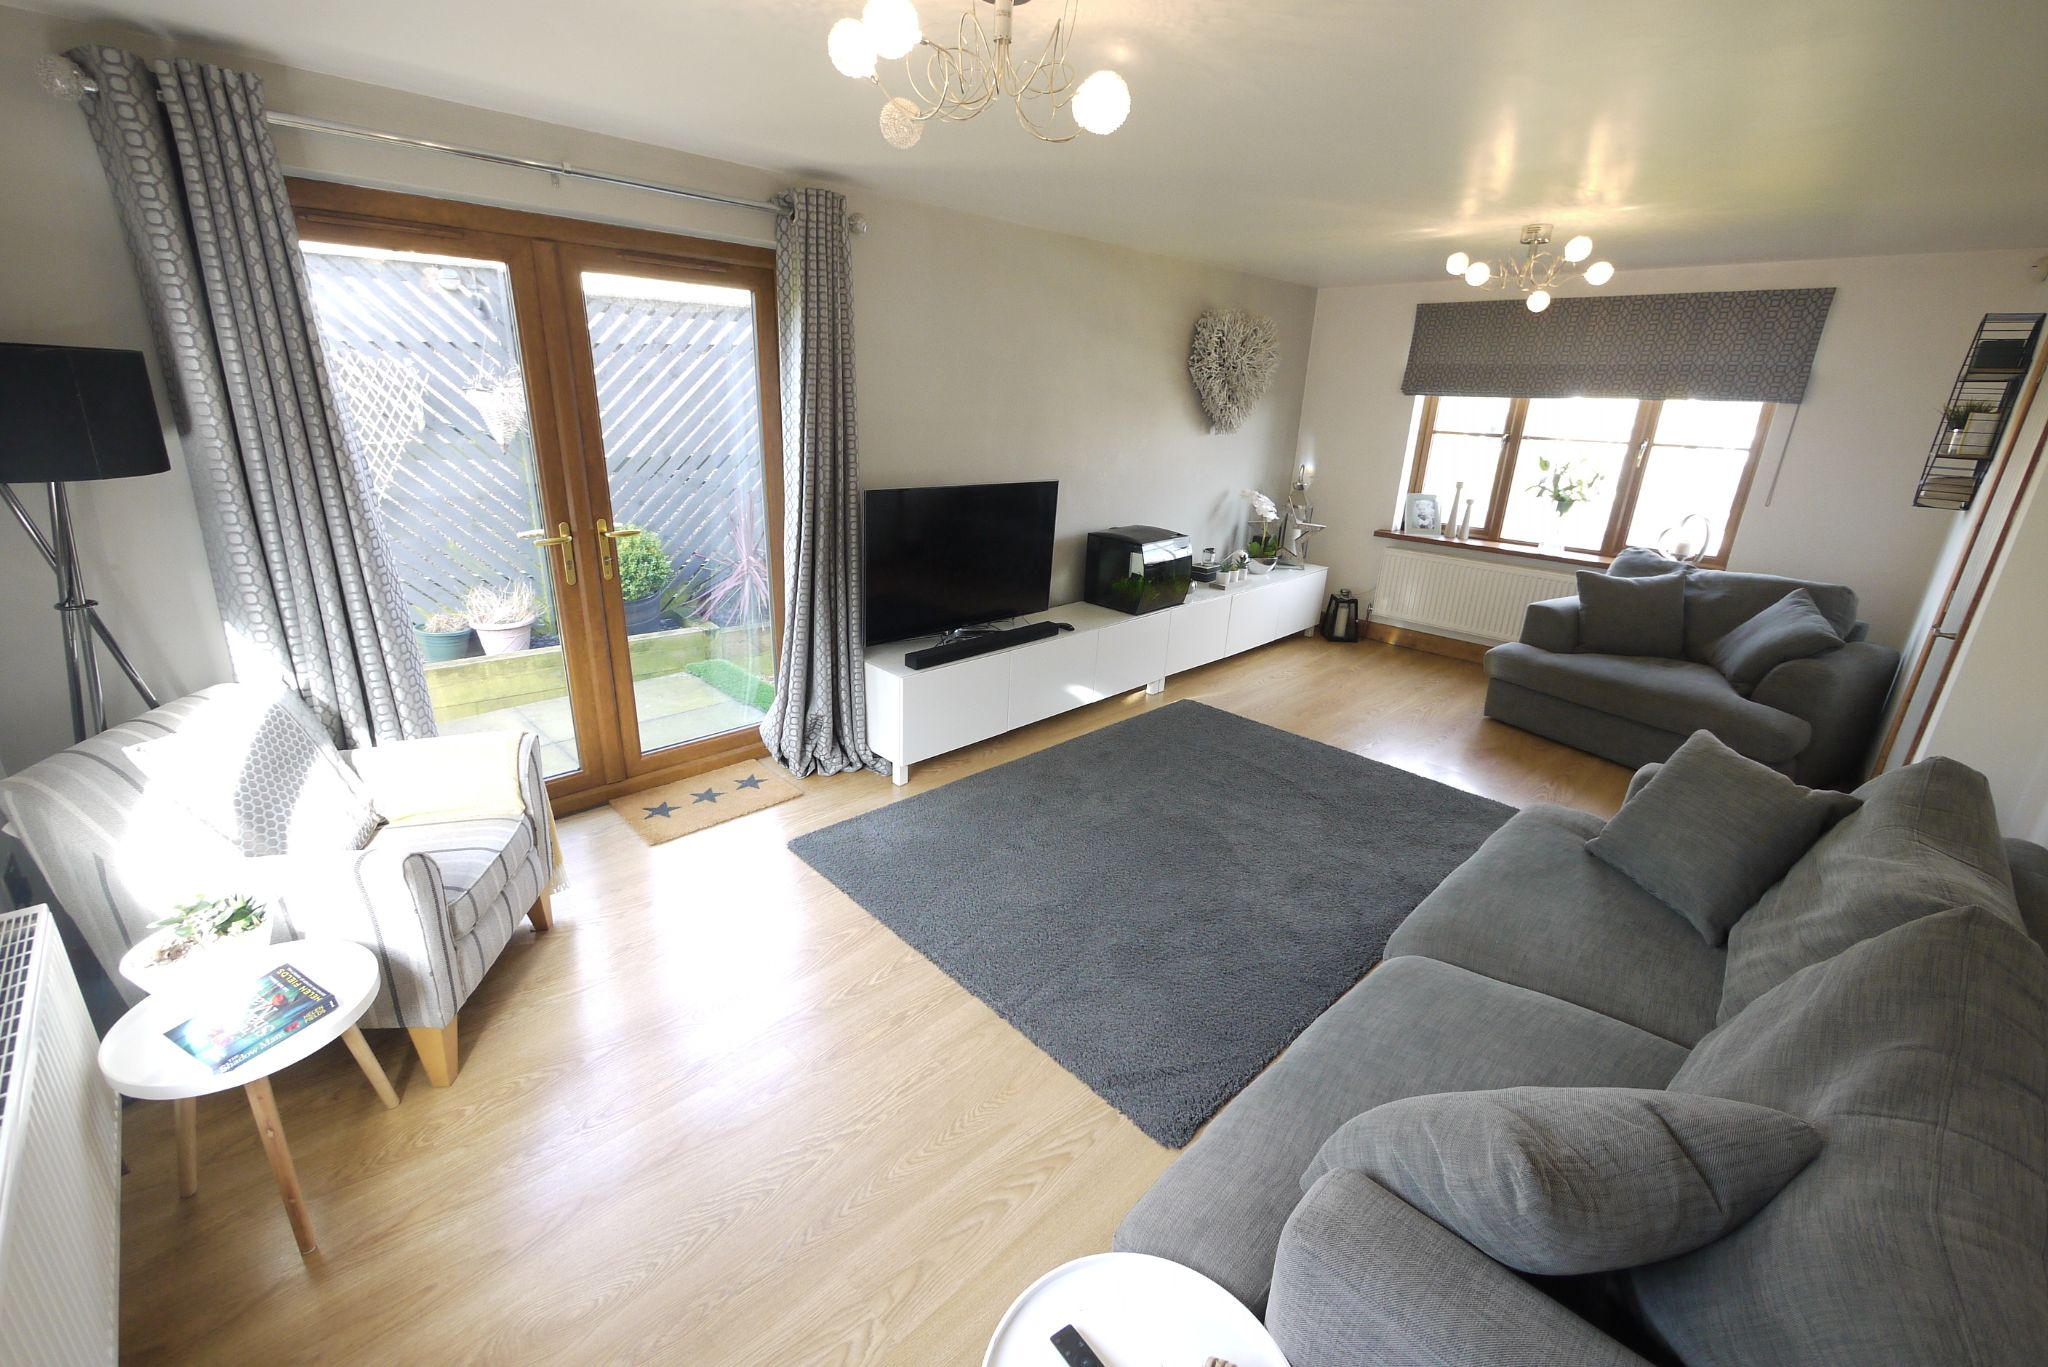 4 bedroom detached house SSTC in Brighouse - Lounge.